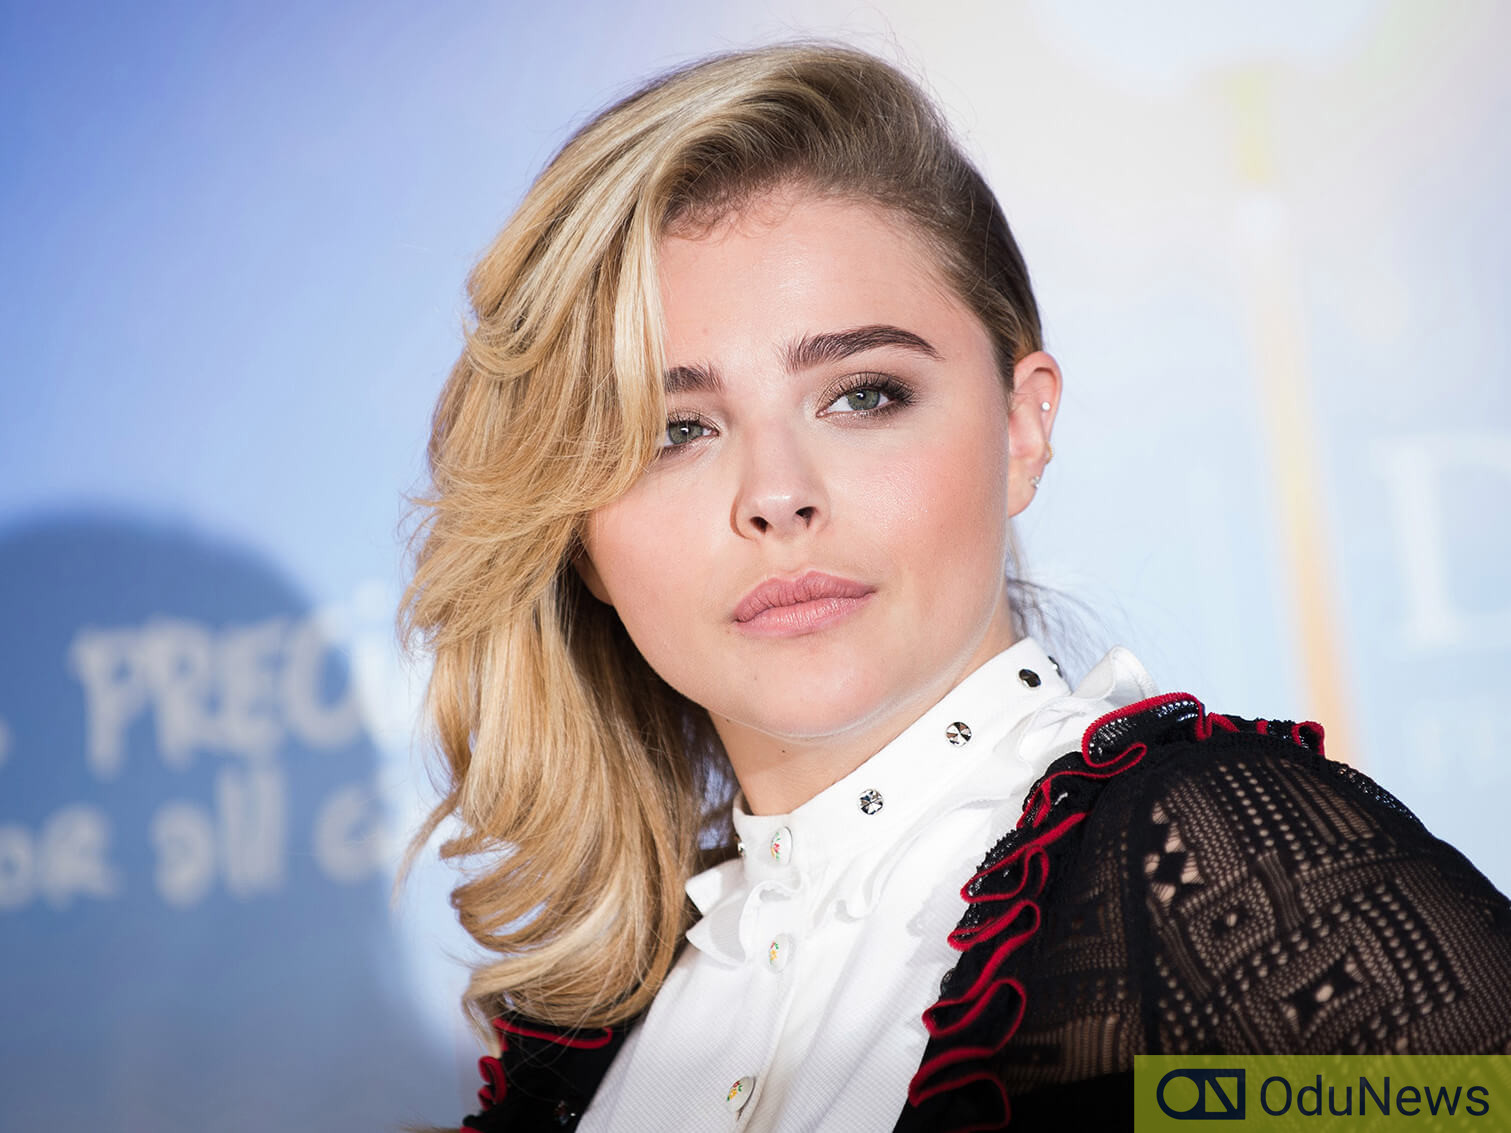 Chloe Grace Moretz plays the lead who stumbles upon the cat and rat